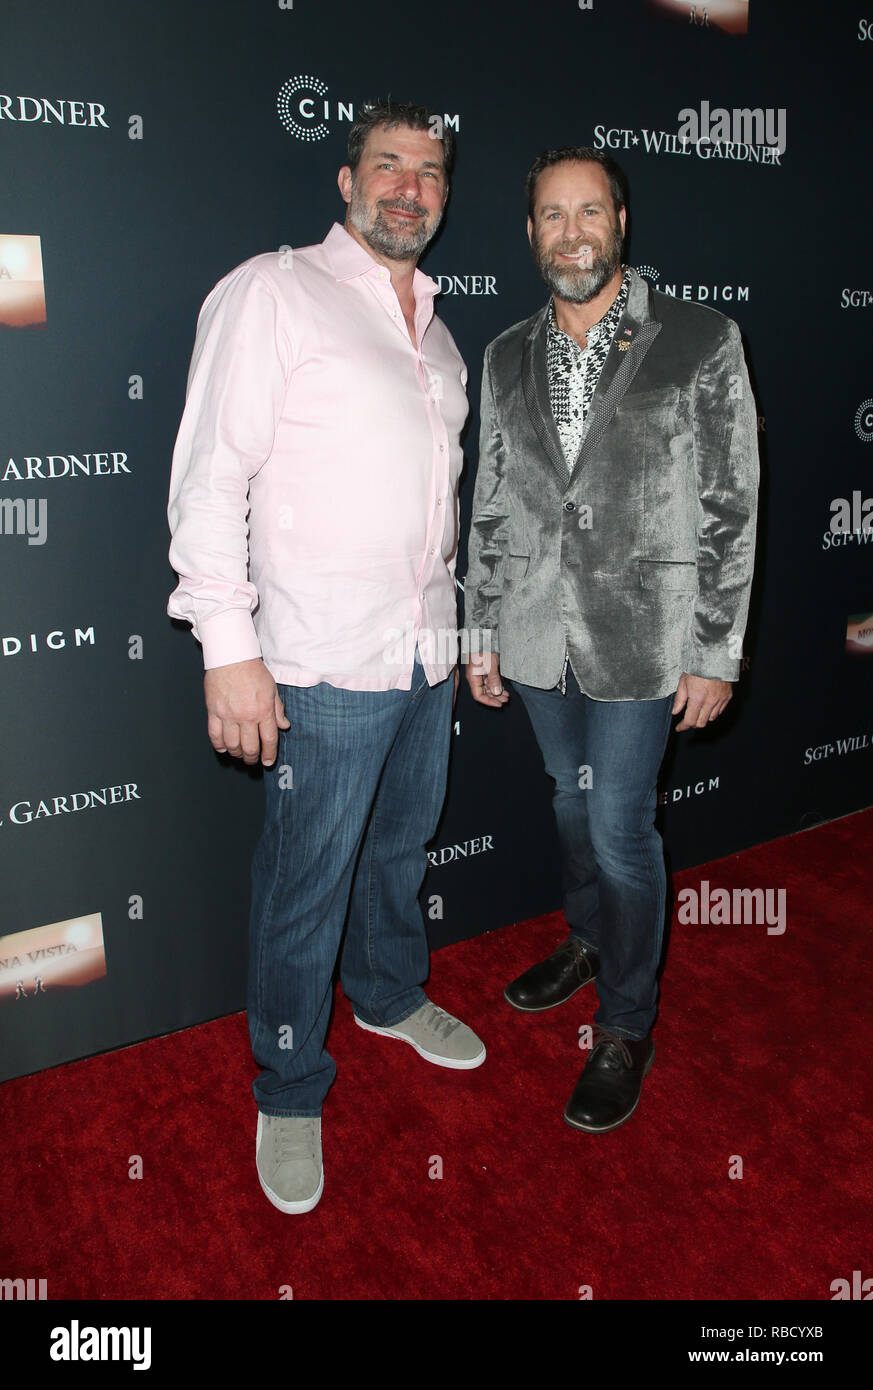 Hollywood, Ca. 8th Jan, 2019. Hugh Middleton, Shawn Hamilton, at Premiere Of Cinedigm Entertainment Group's 'SGT. Will Gardner' at ArcLight Hollywood in Hollywood, California on January 8, 2019. Credit: Faye Sadou/Media Punch/Alamy Live News - Stock Image